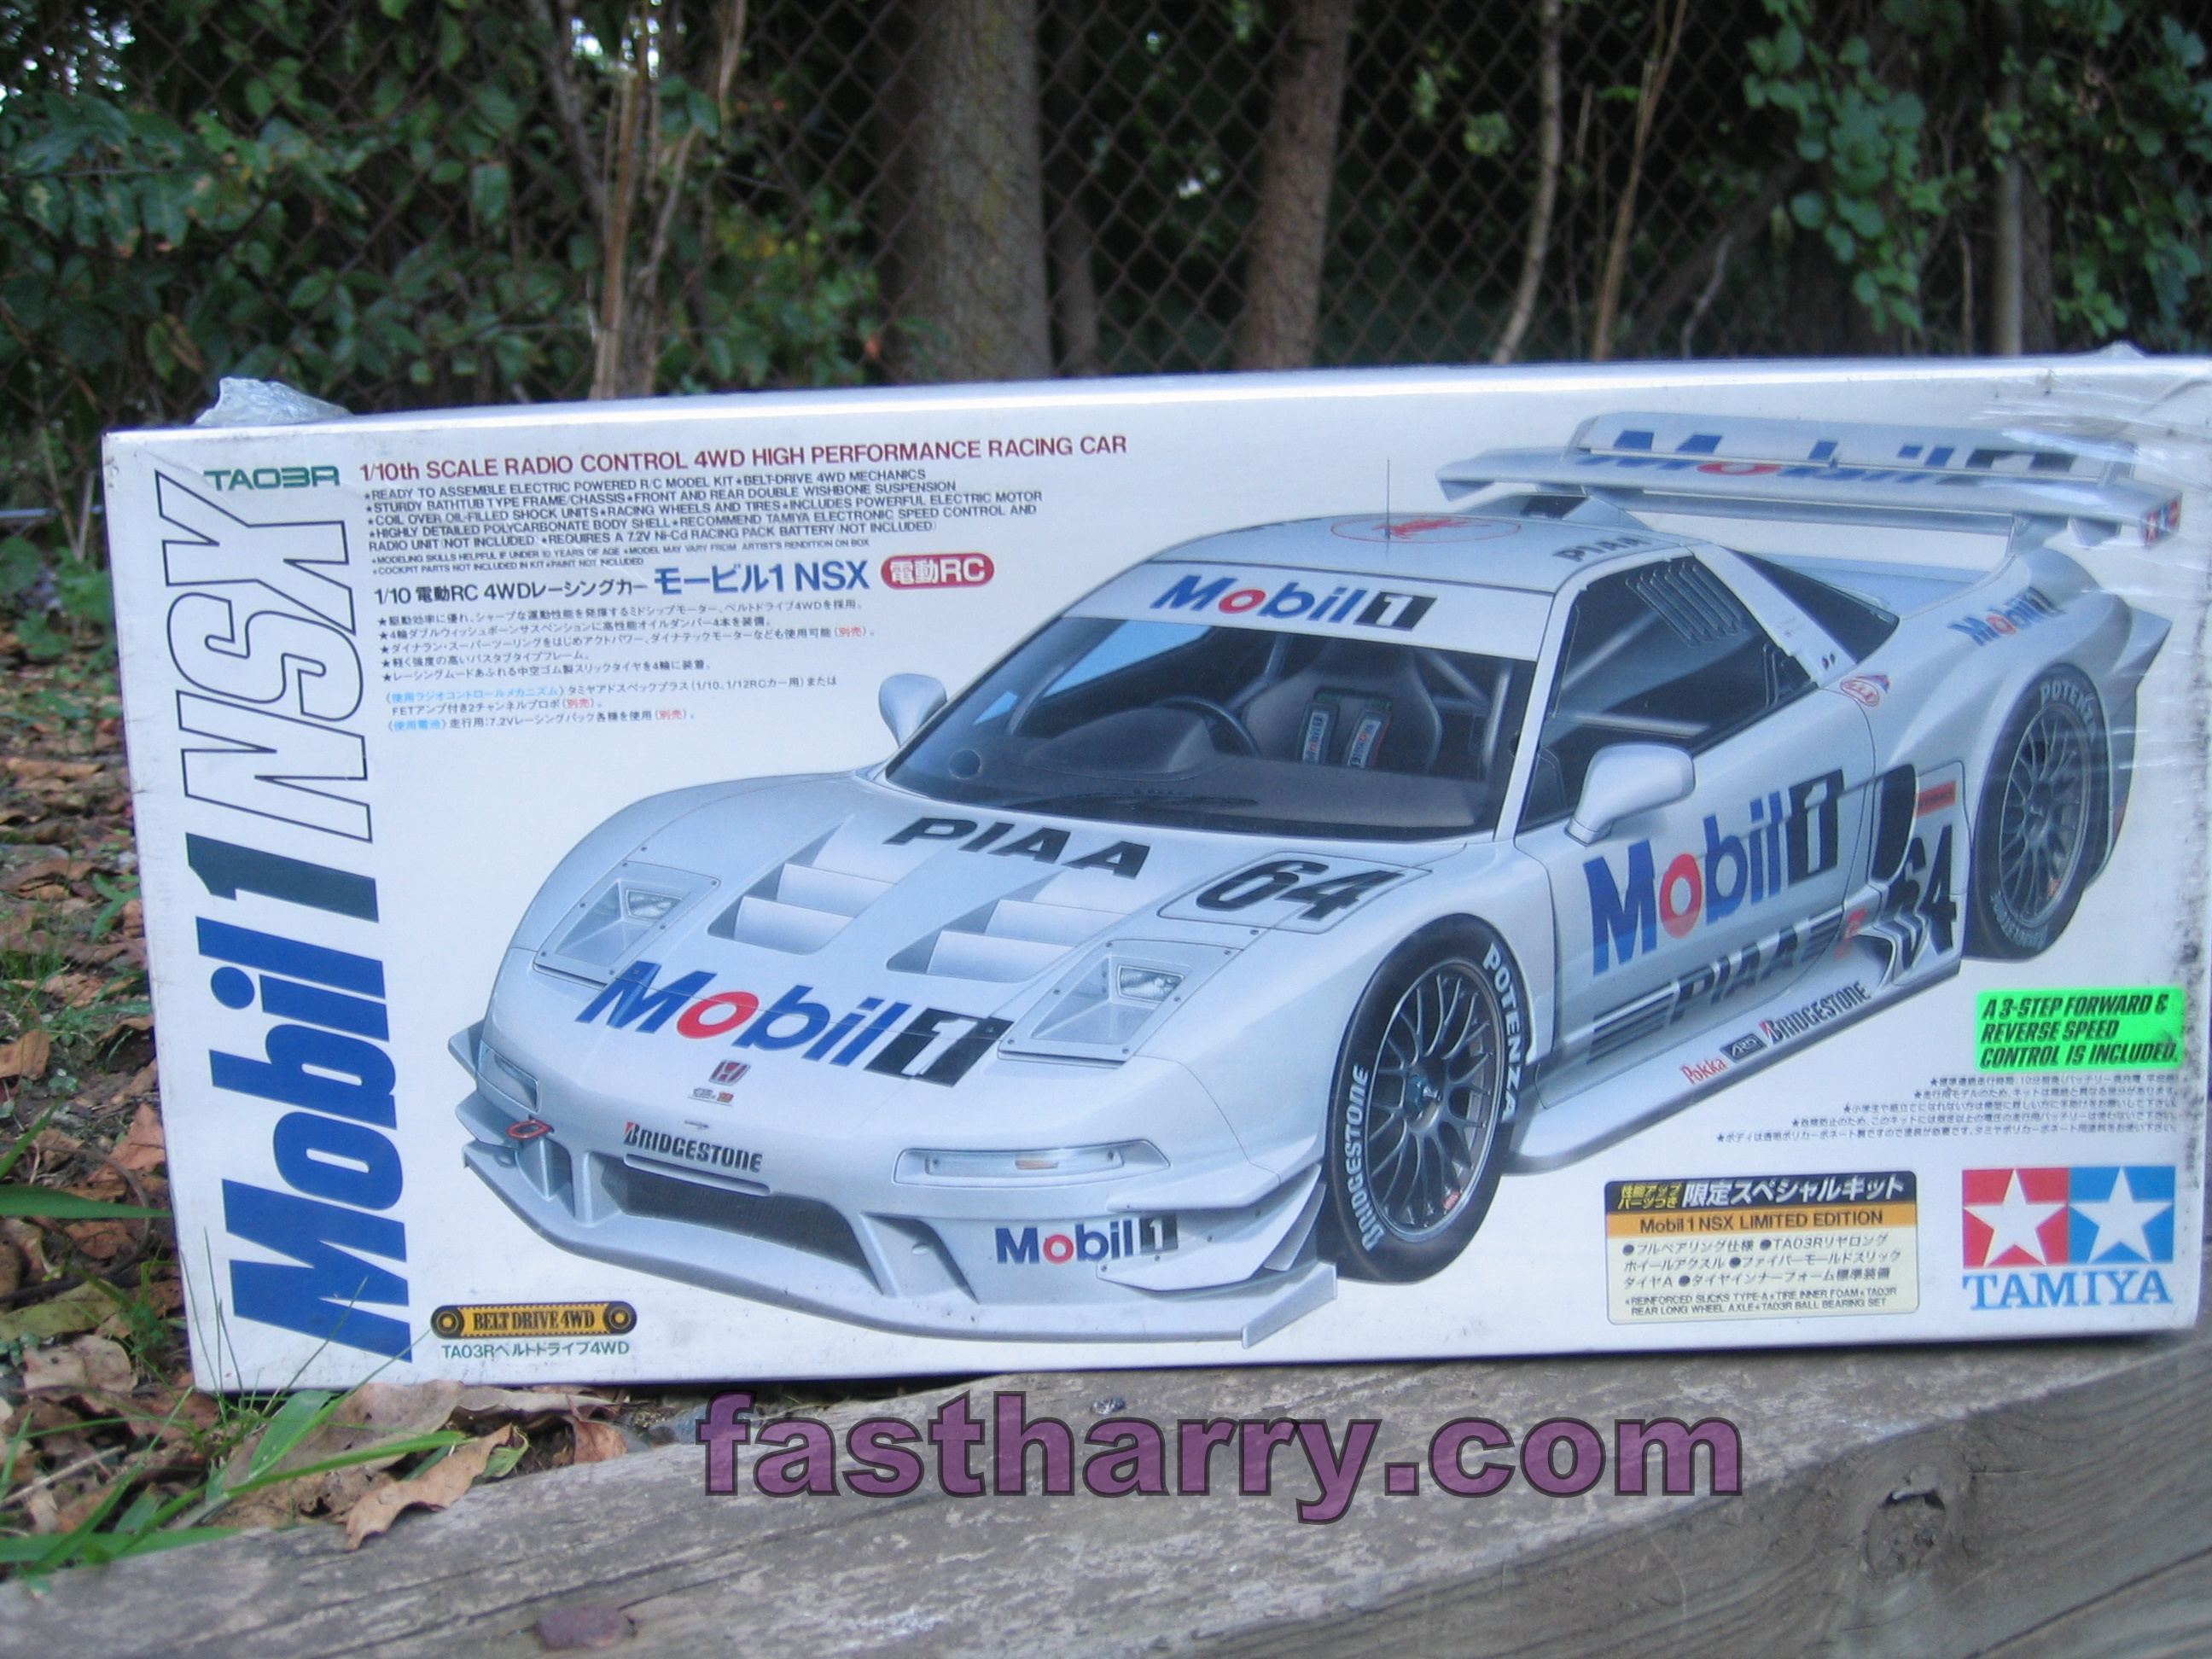 Vintage Tamiya Mobil One Acura Nsx Limited Edition 58220 Fastharry